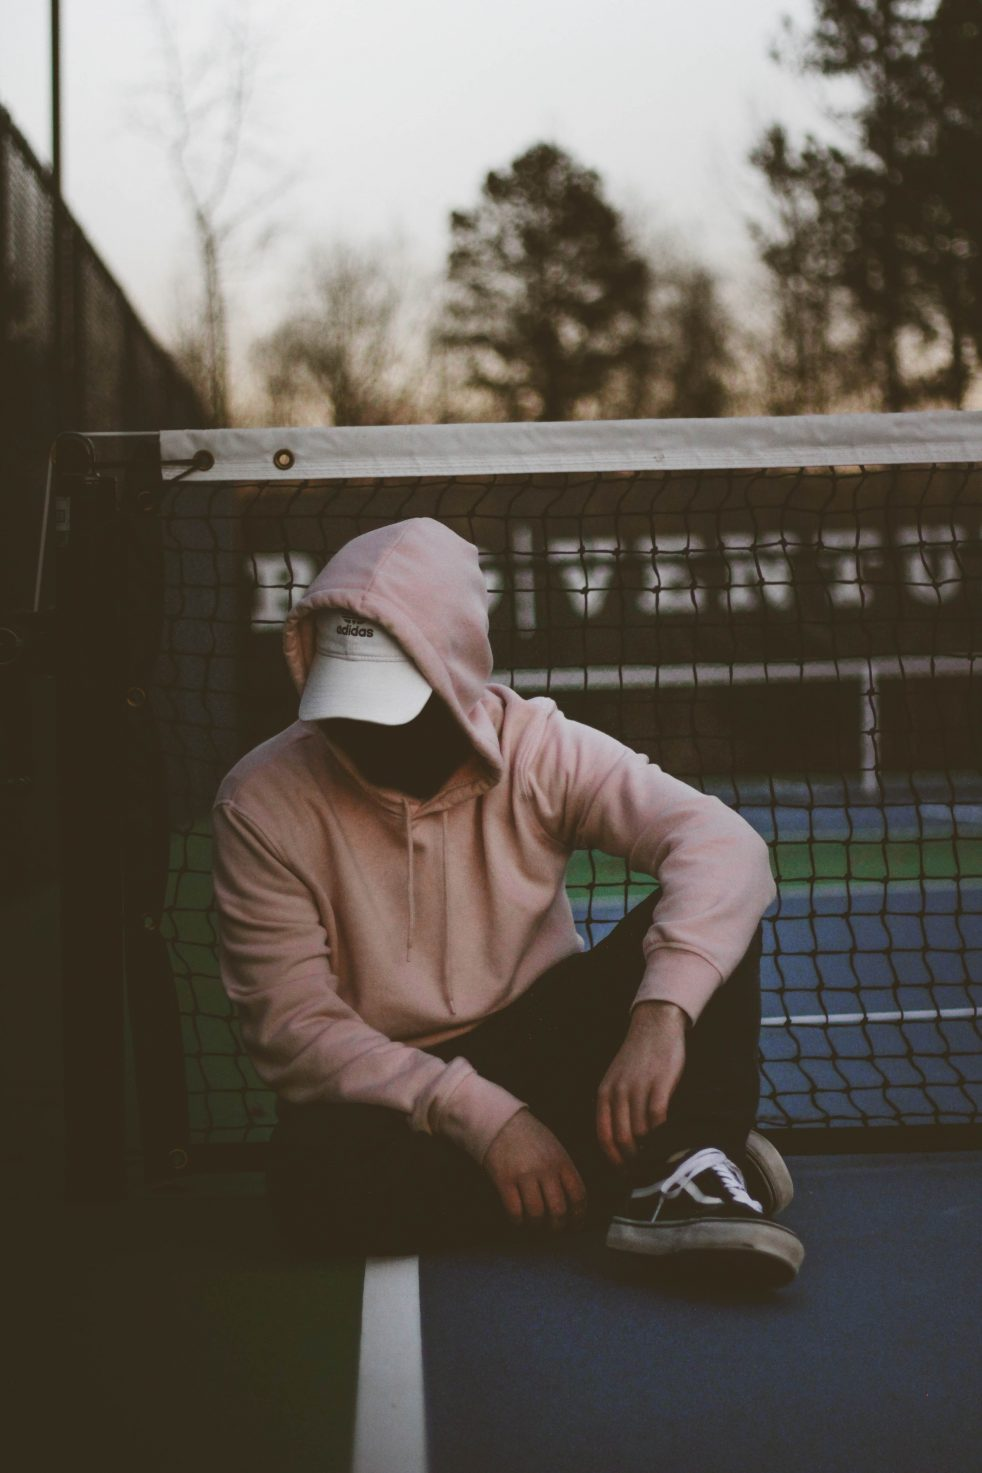 Image is of a man in a pink hoody pulled up over a white ball cap, wearing black joggers and white sneakers, sitting on a tennis court, with his head looking at the ground. He's all alone, to emphasize the fact that you shouldn't grieve in front of your child.